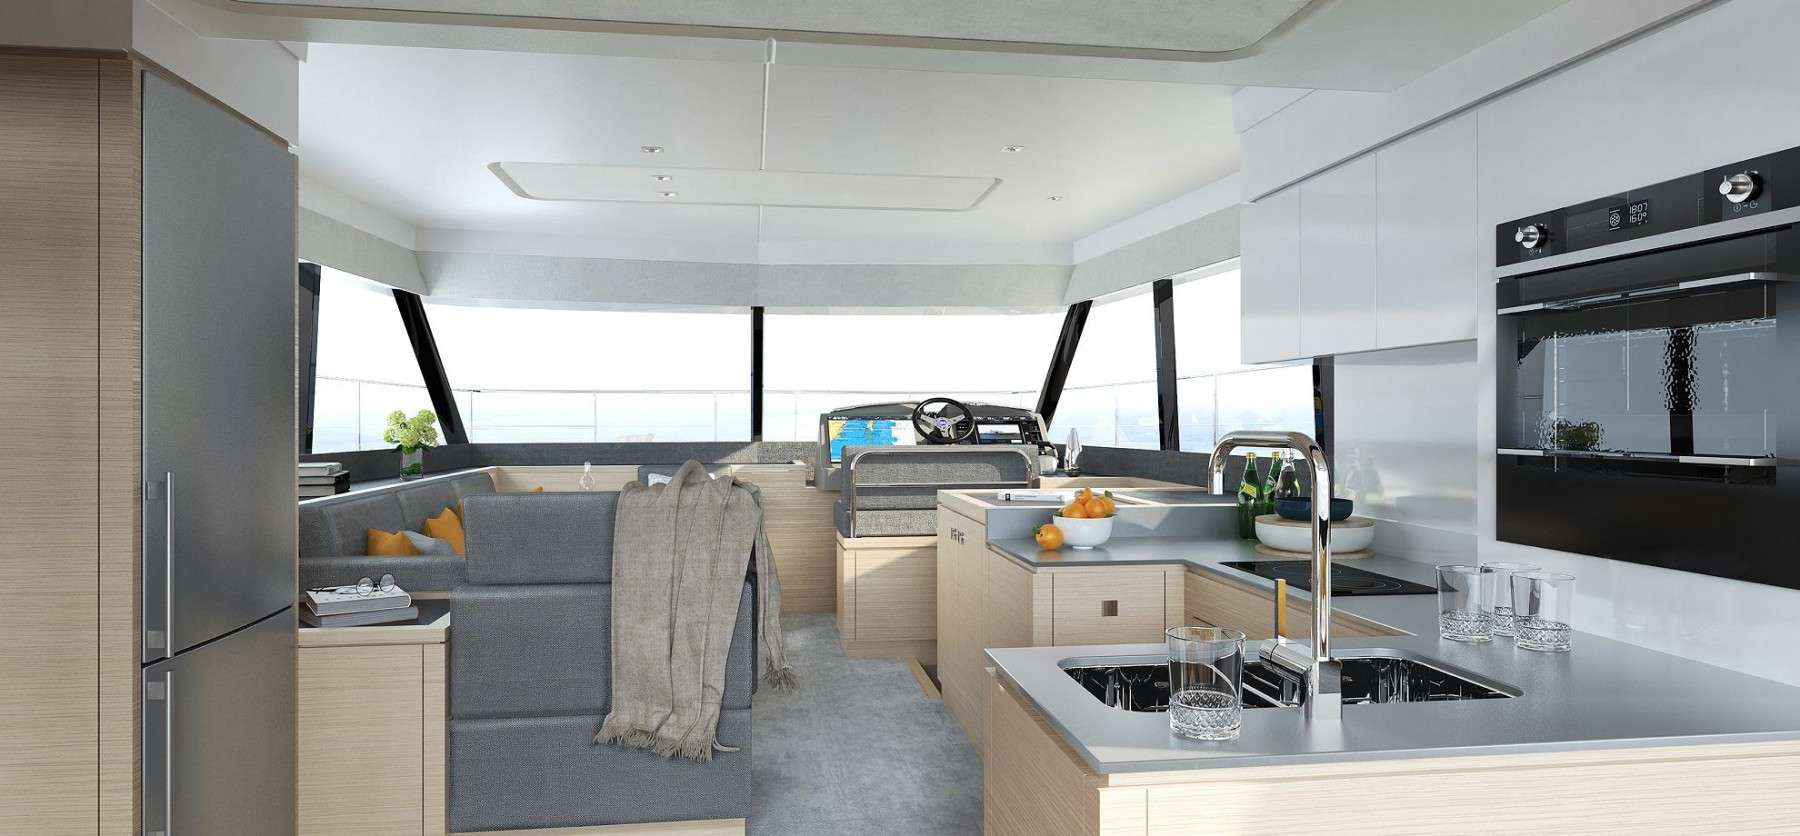 Galley and saloon of a Fountaine Pajot Motor yacht 40 indicates a really comfortable holiday